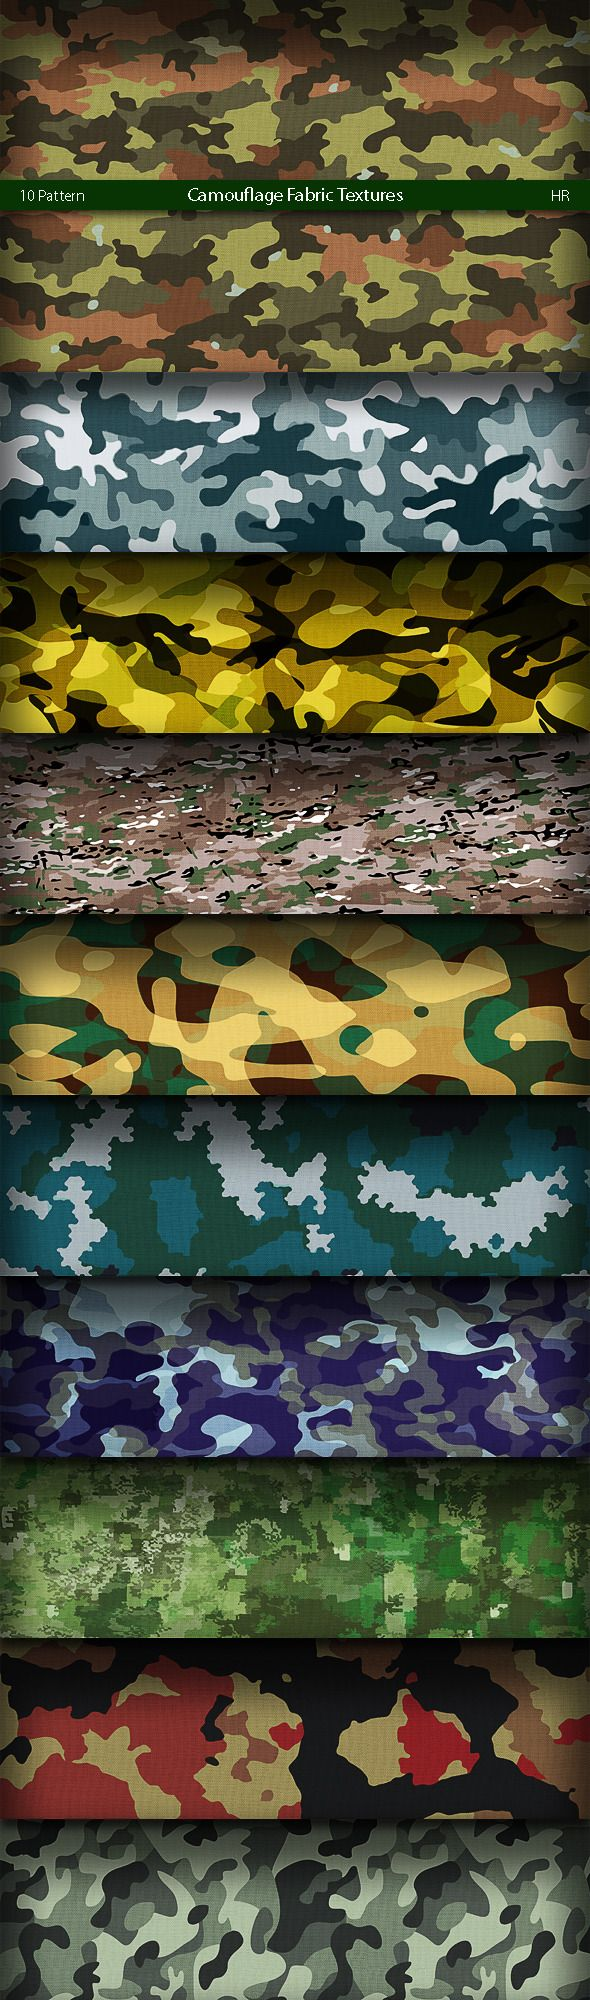 Camouflage Fabric Patterns Textures Fills Patterns